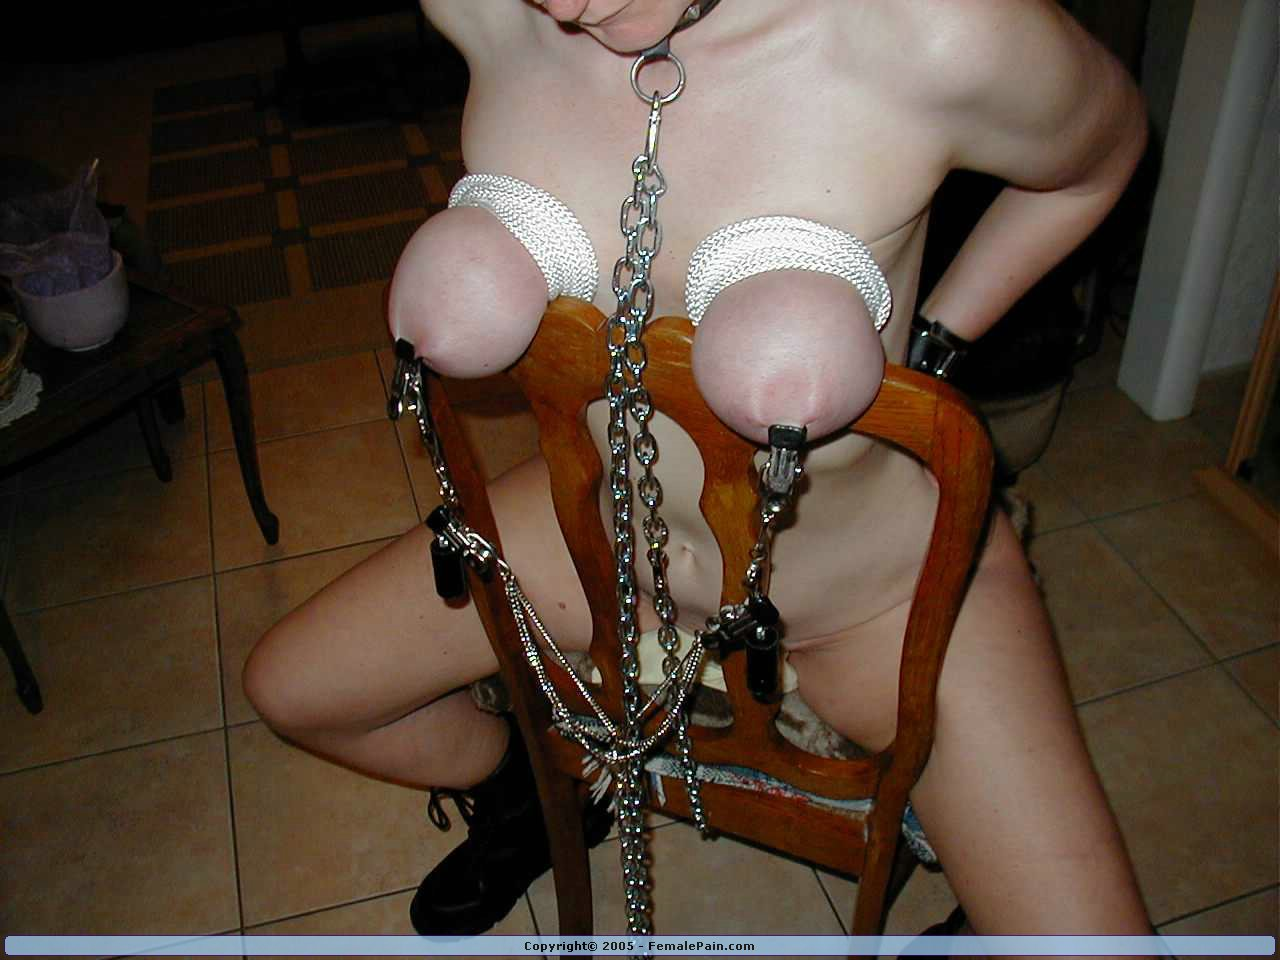 Female domination bondage videos have